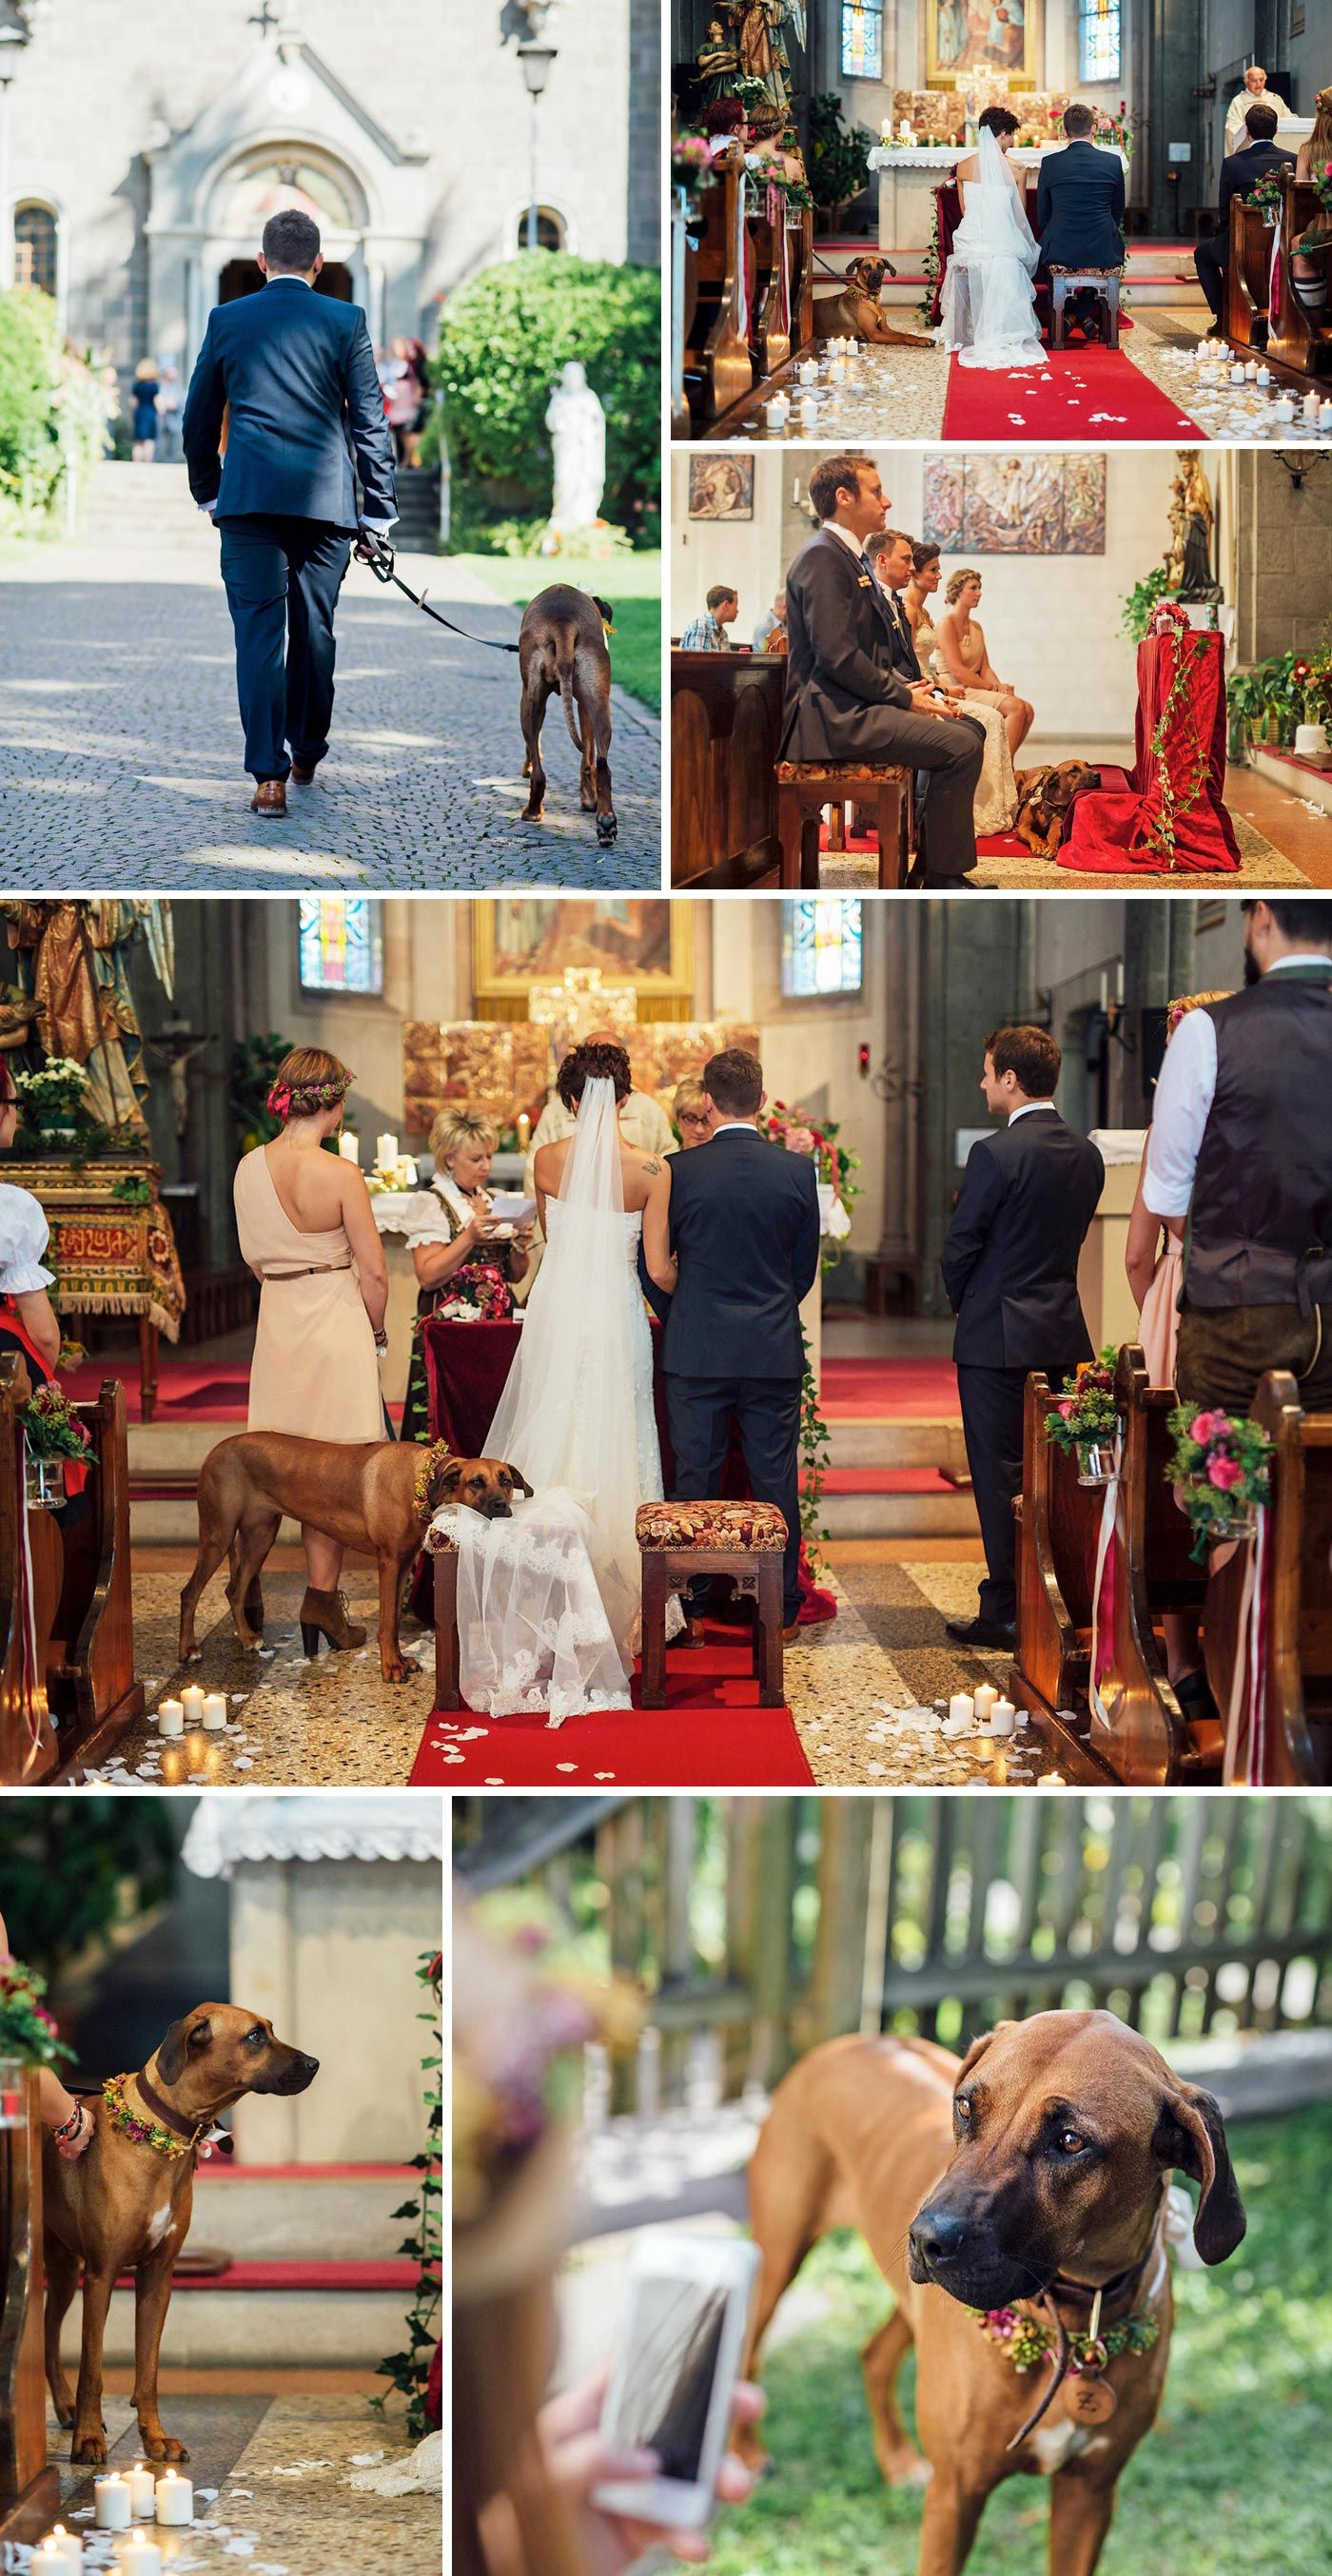 Hund zur Hochzeit | Bridezilla, Wedding and Weddings